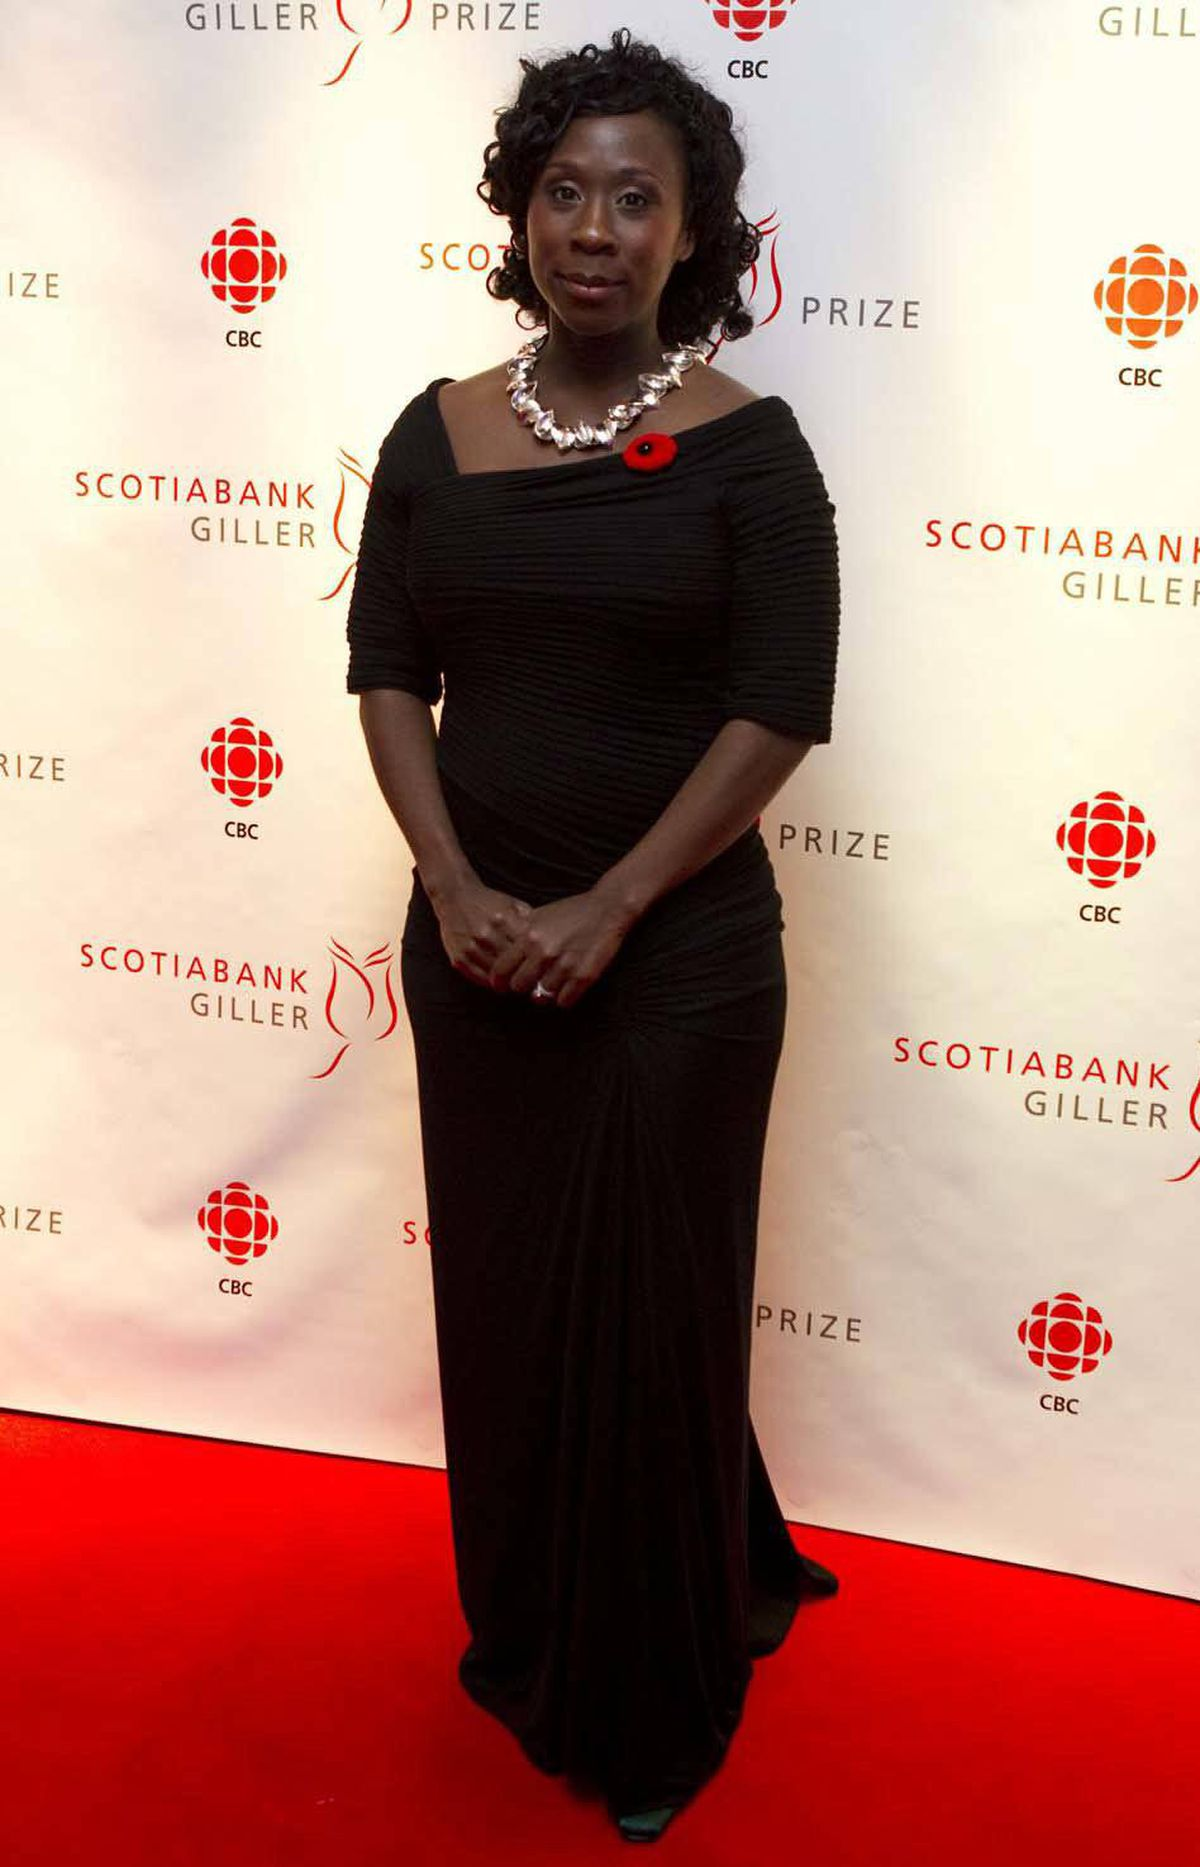 """Esi Edugyan, author of """"Half-Blood Blues"""" and eventual winner on the night, arrives at the Giller gala."""